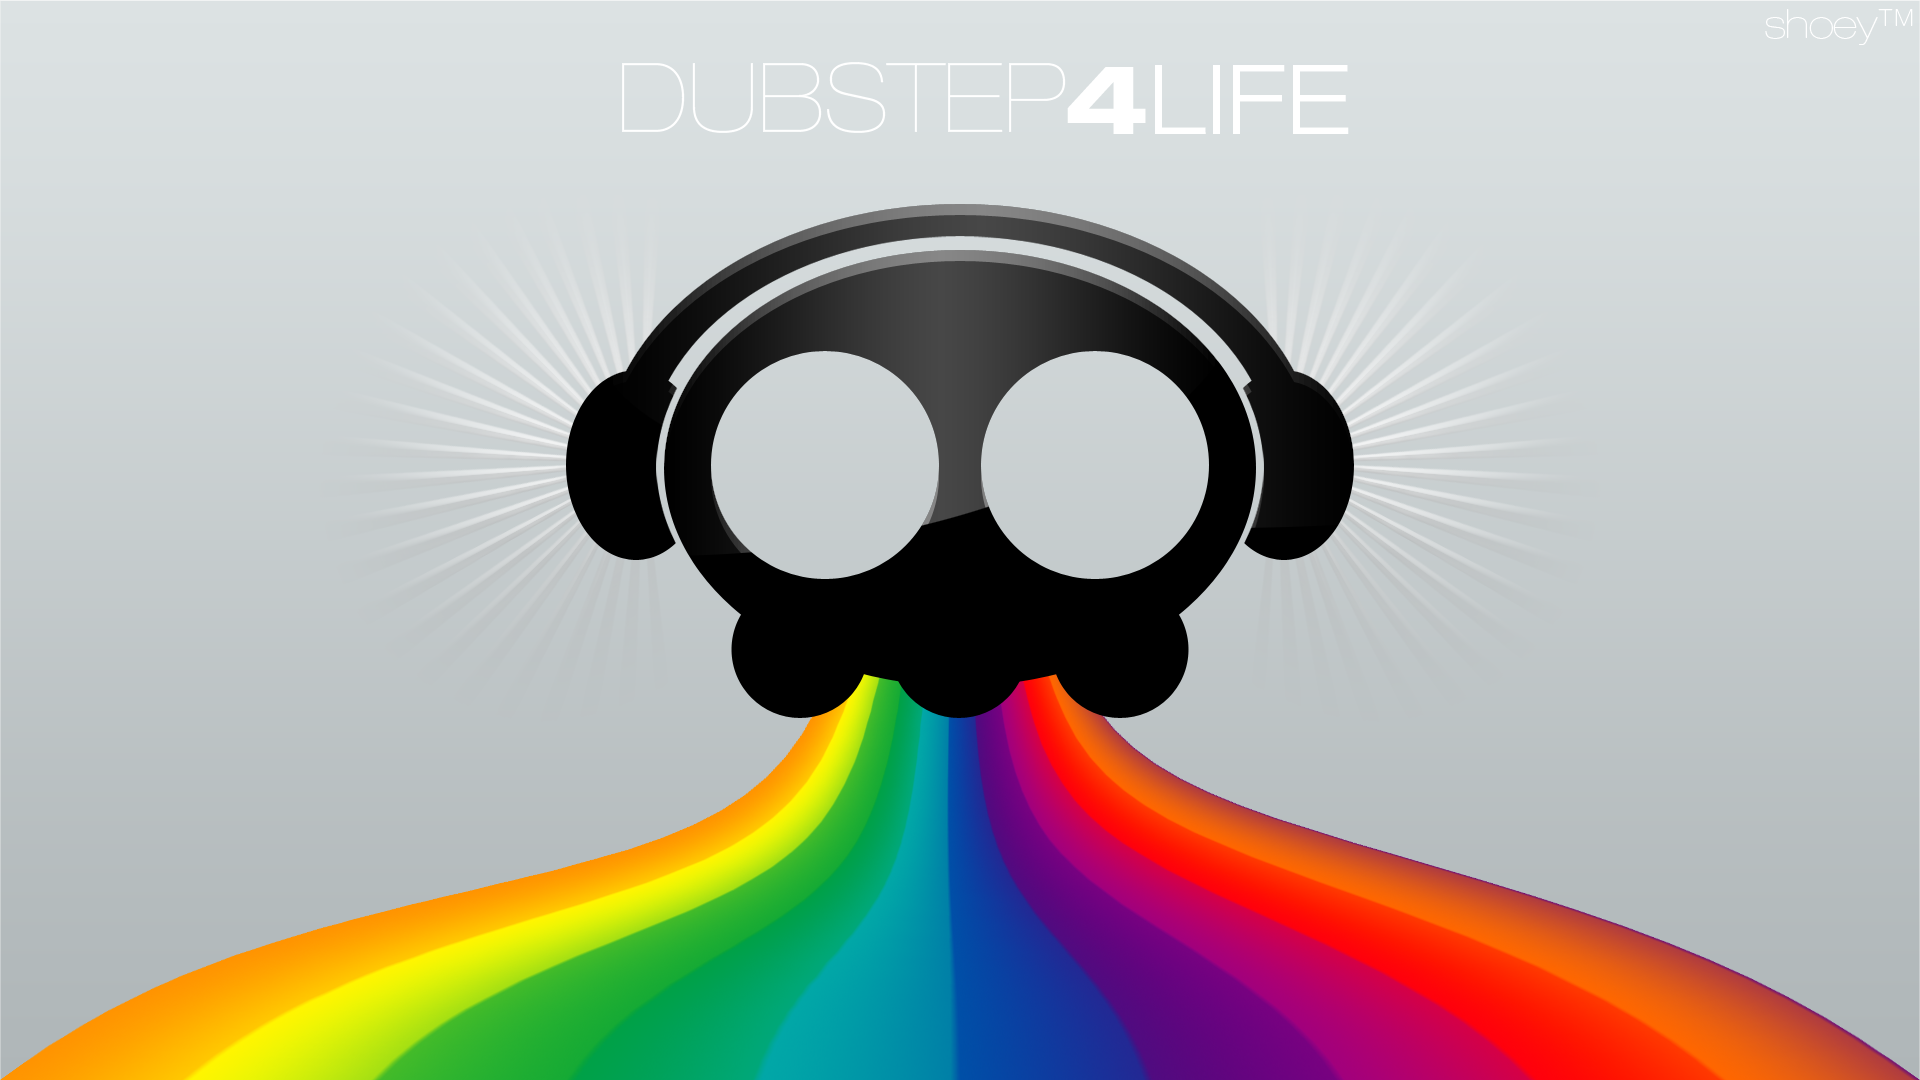 Dubstep Computer Wallpapers, Desktop Backgrounds